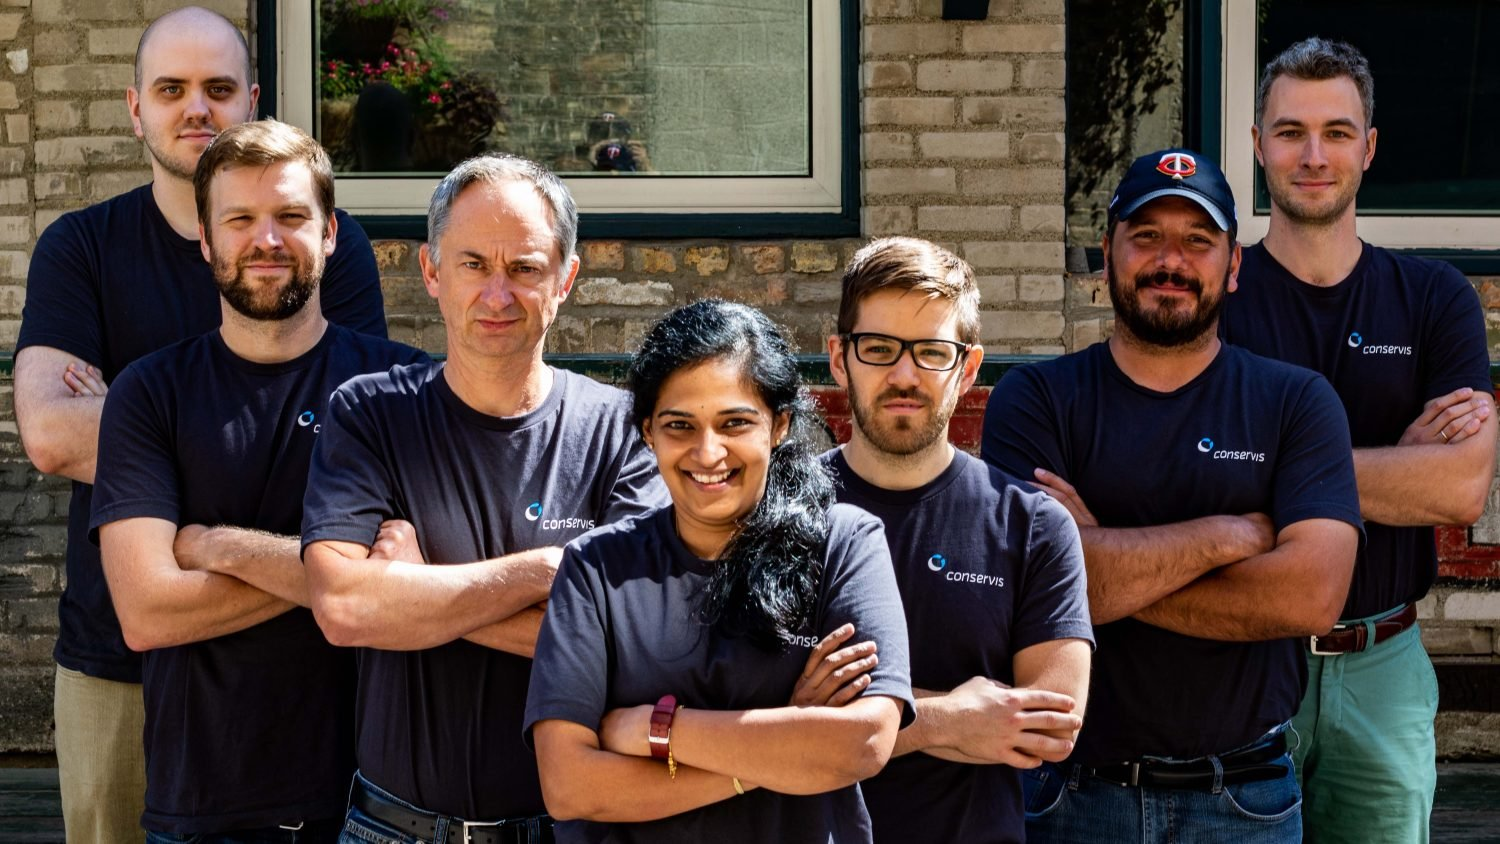 Conservis engineering team led by Aneetha Gopalan